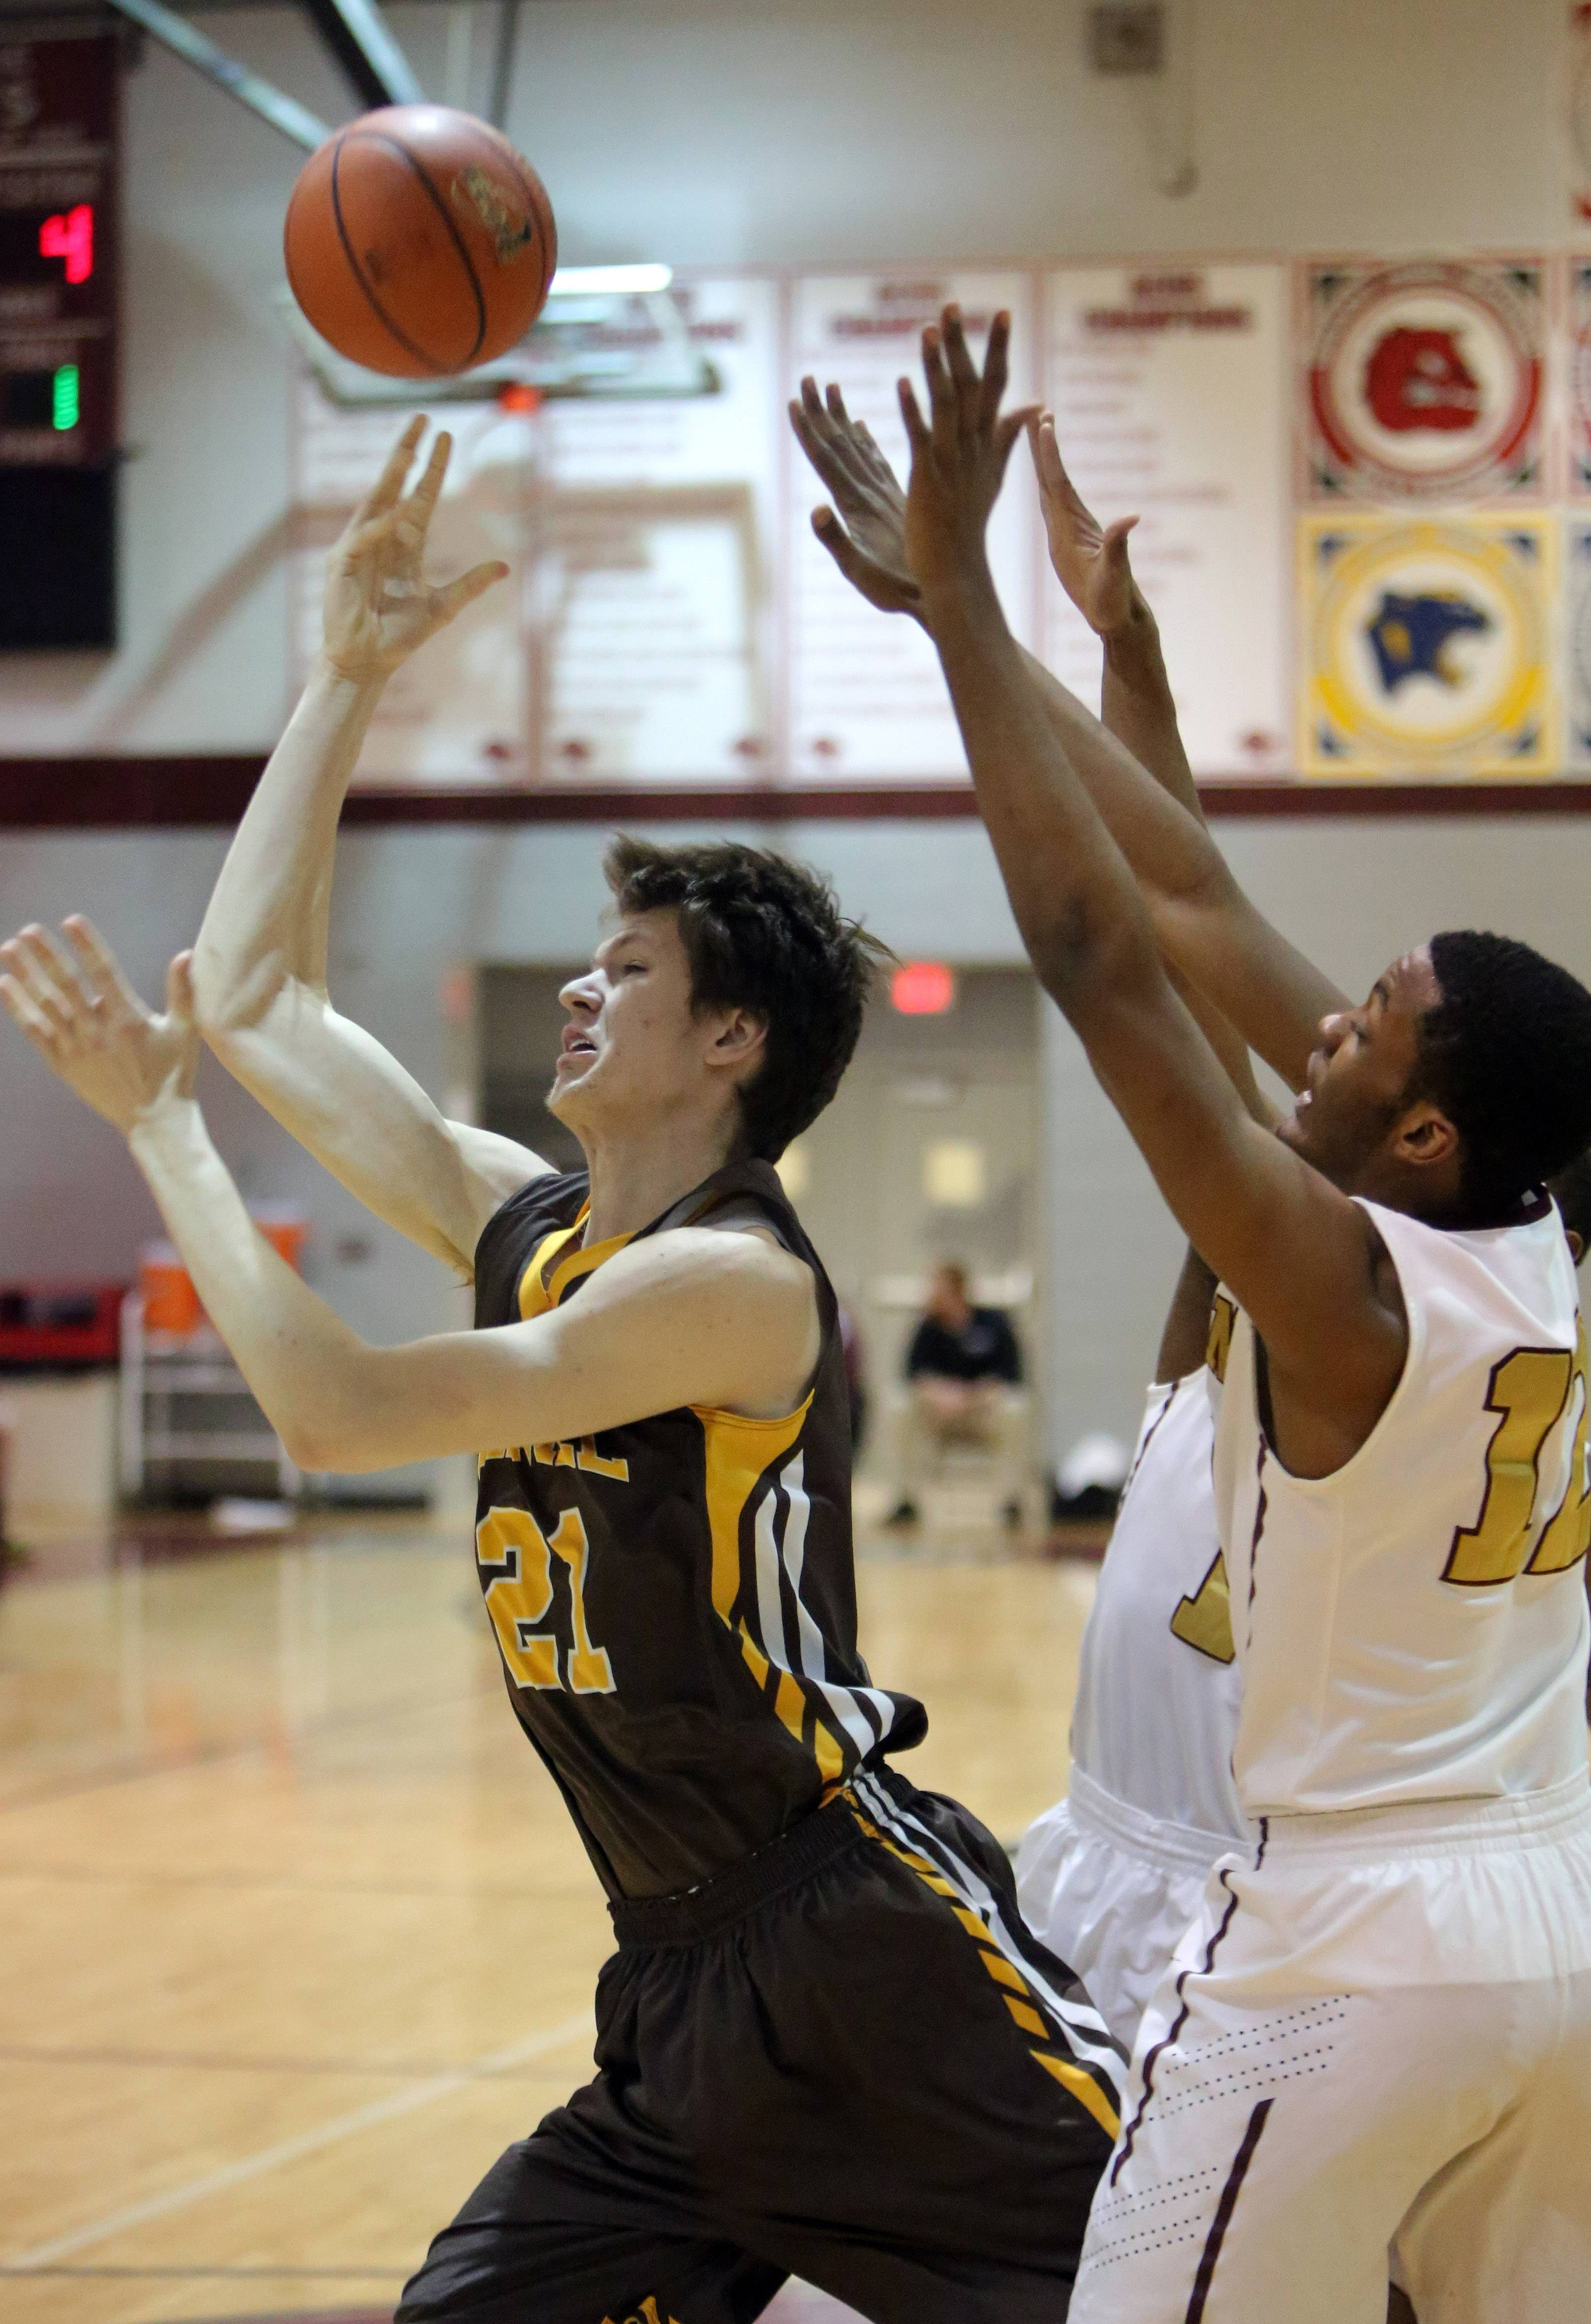 Carmel's Jack George, left, drives on Uplift's Jamaya Wyatt.